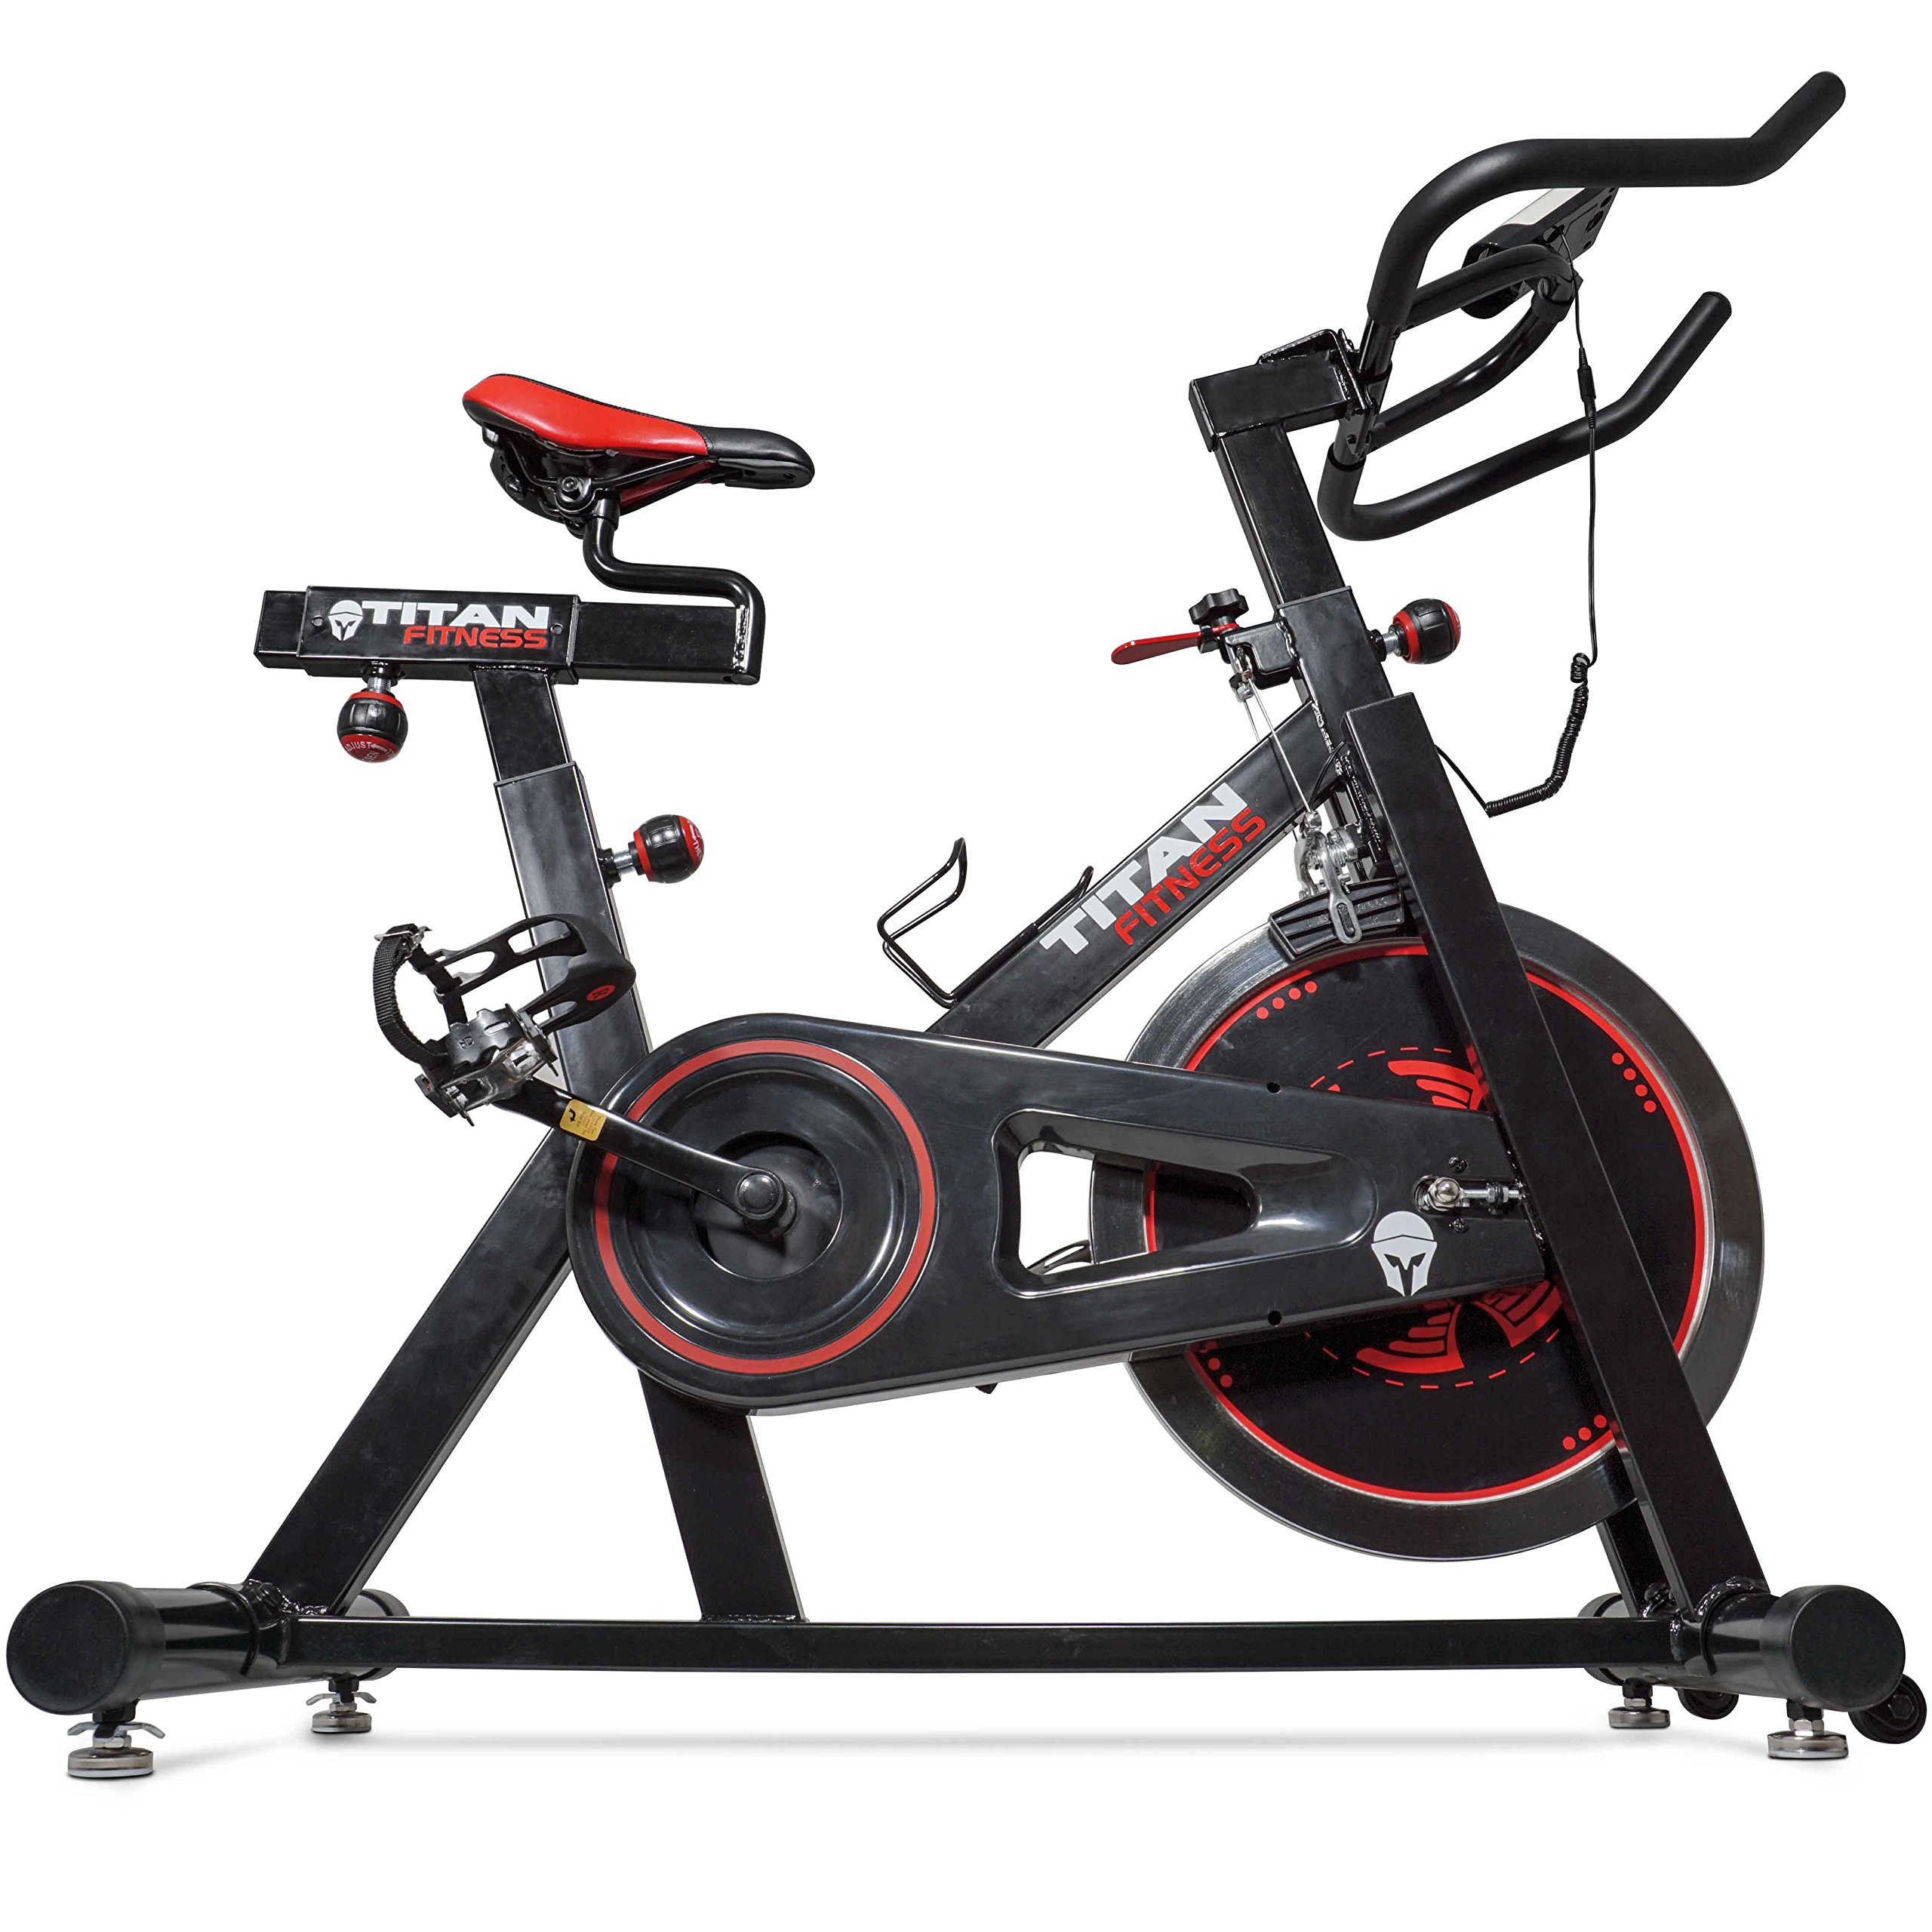 Titan Pro Indoor Exercise Bike w/ 40 lb Flywheel LCD Cycle Cardio Fitness by Titan Fitness